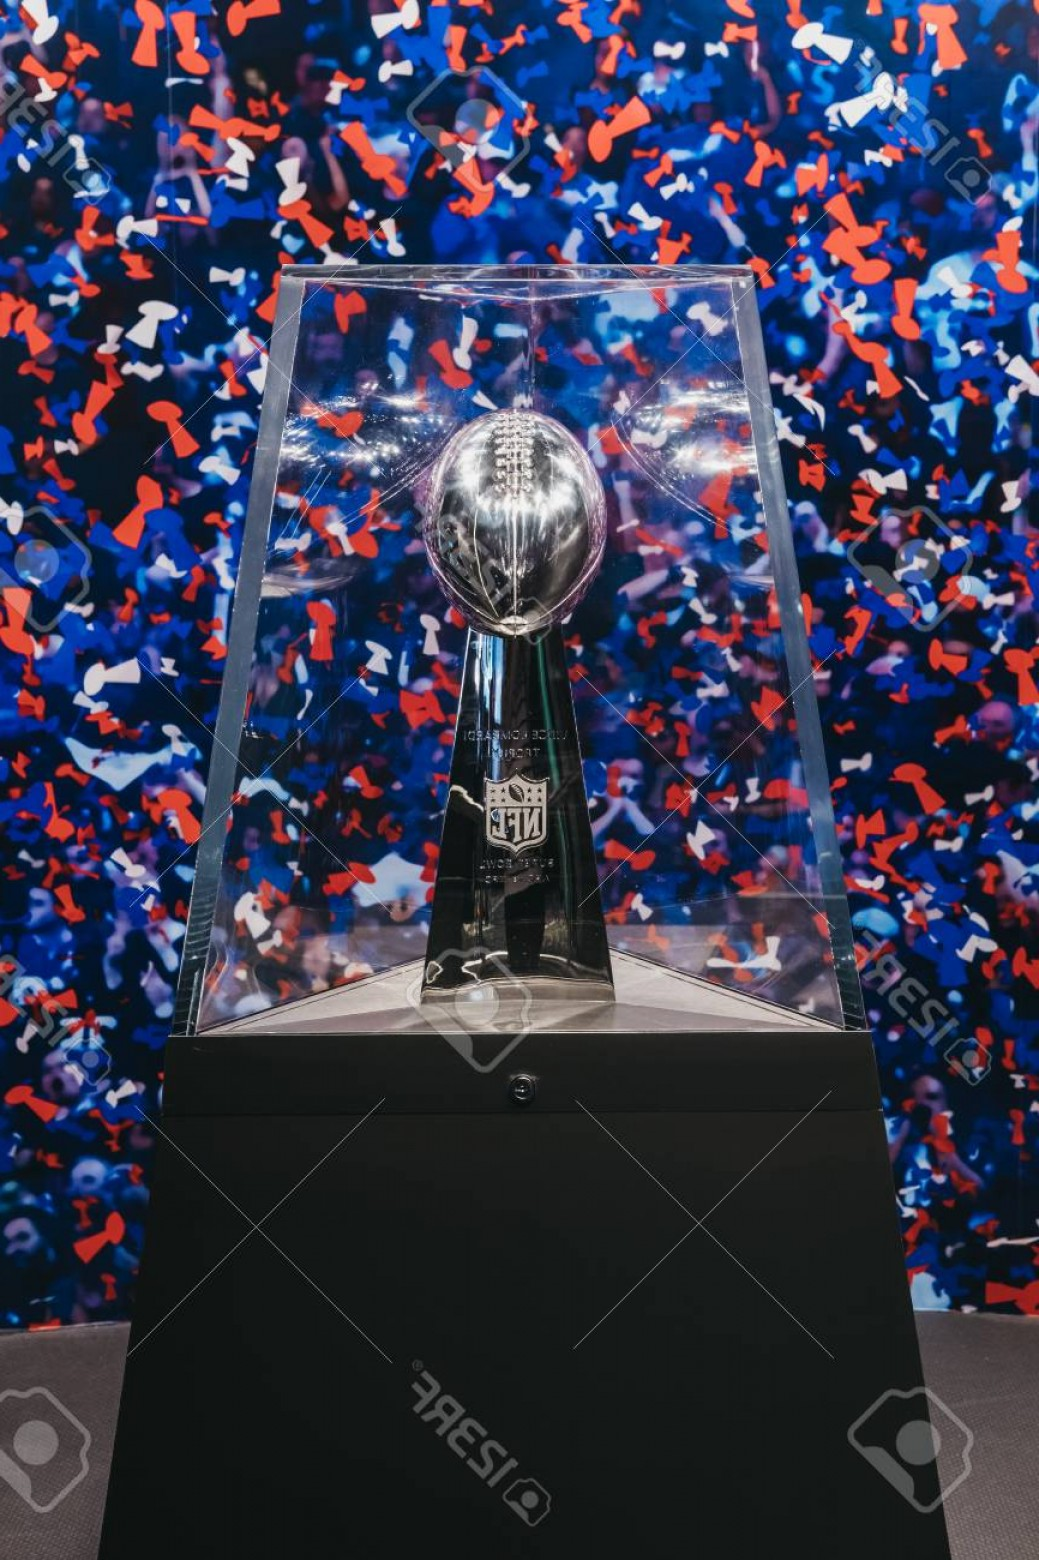 Super Bowl XLVIII Trophy Vector: Photosuperbowl Trophy On Display In Nfl Experience In Times Square New York A First Of Its Kind Live Acti